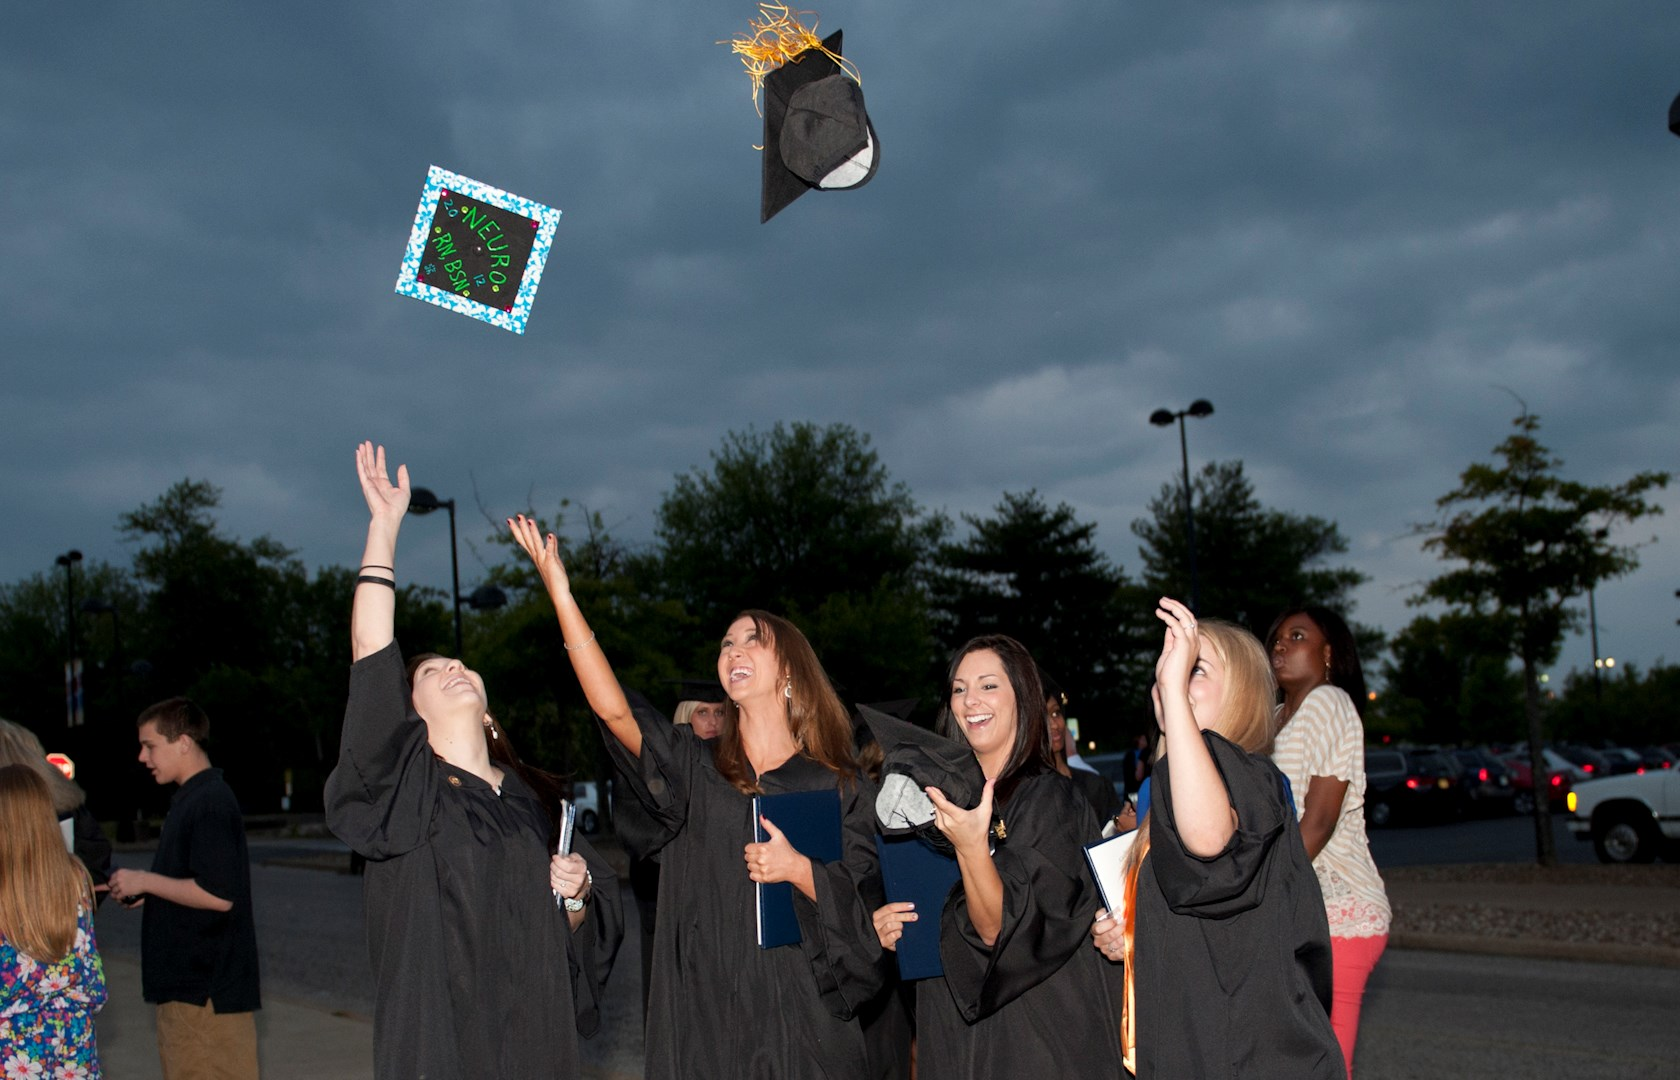 horiz females throw hats from graduation